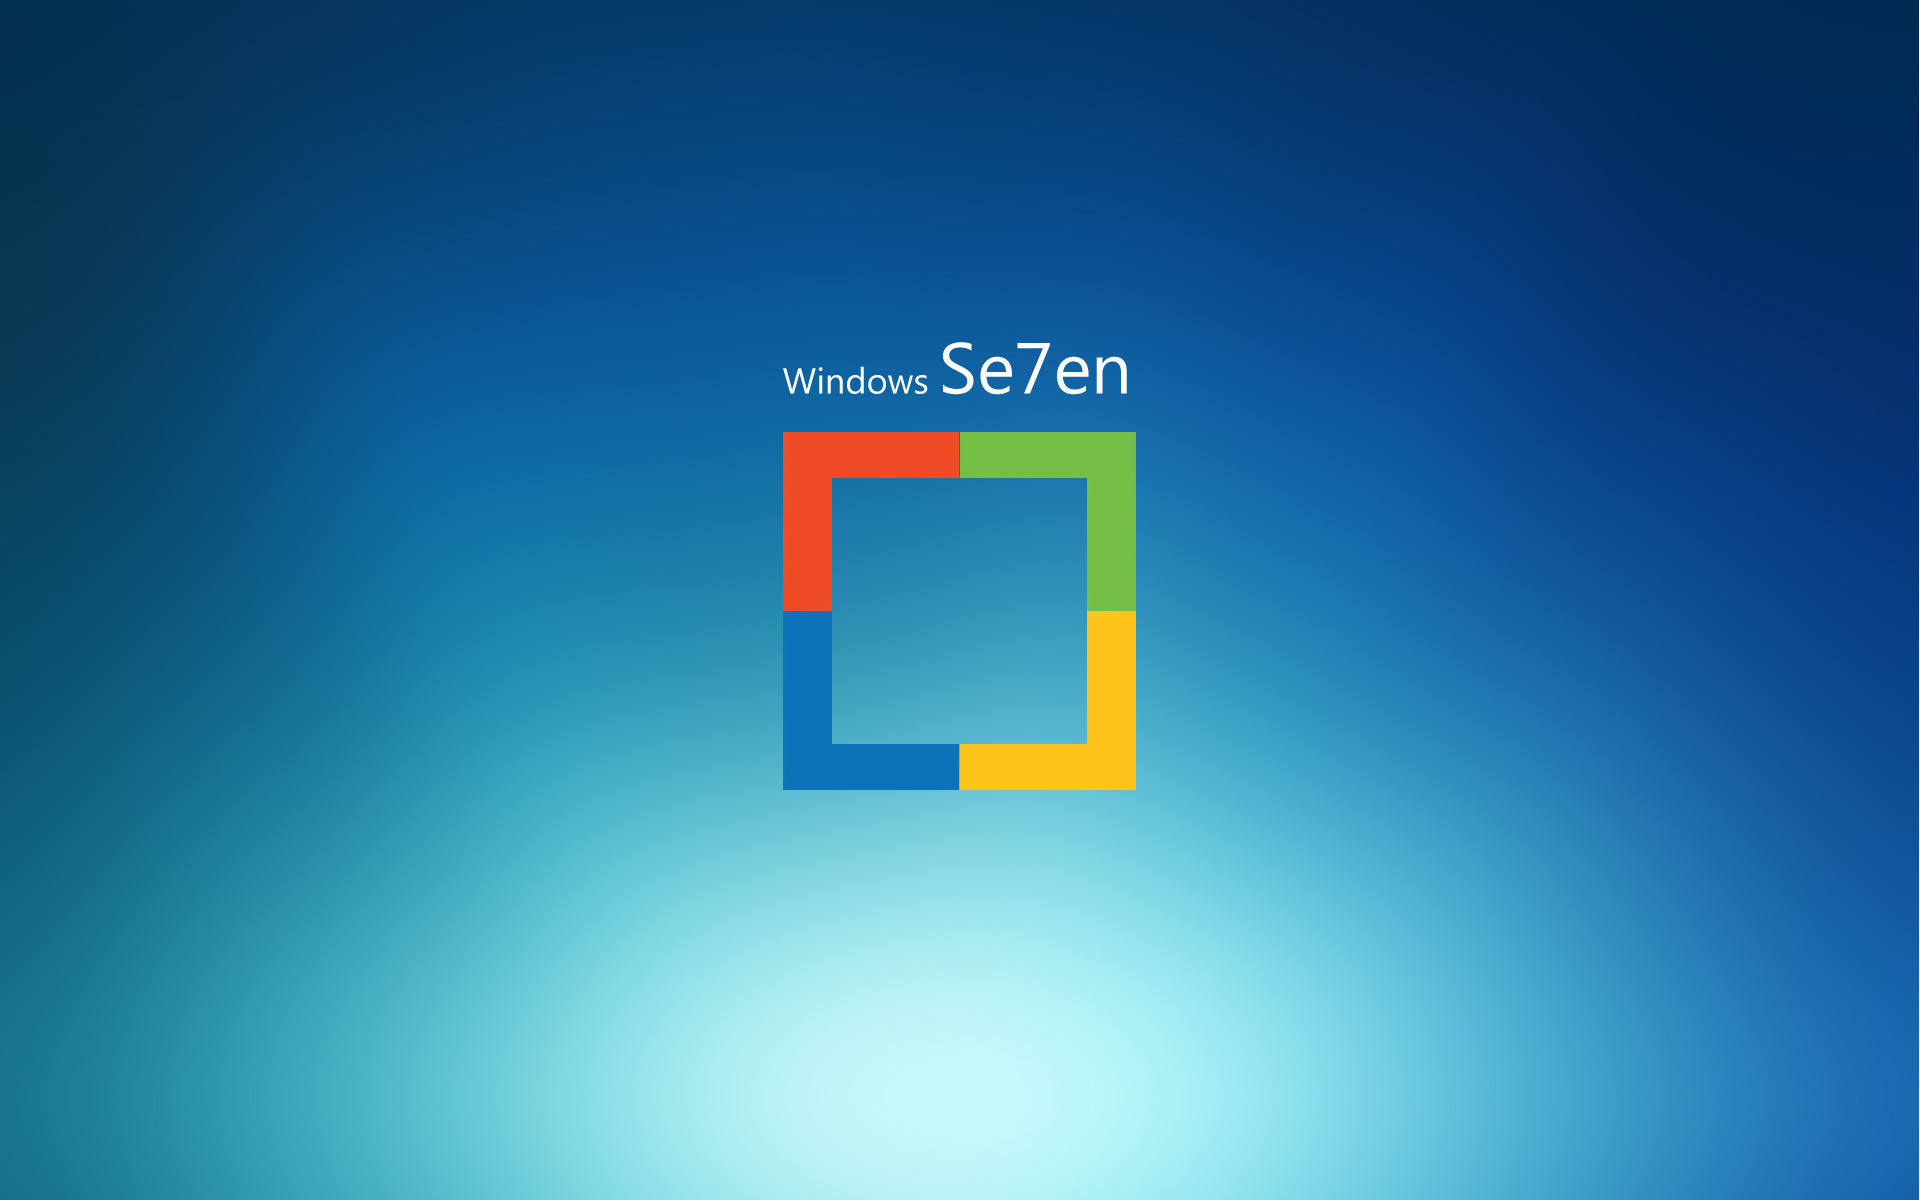 Windows 7 Wallpapers Backgrounds Hd 07